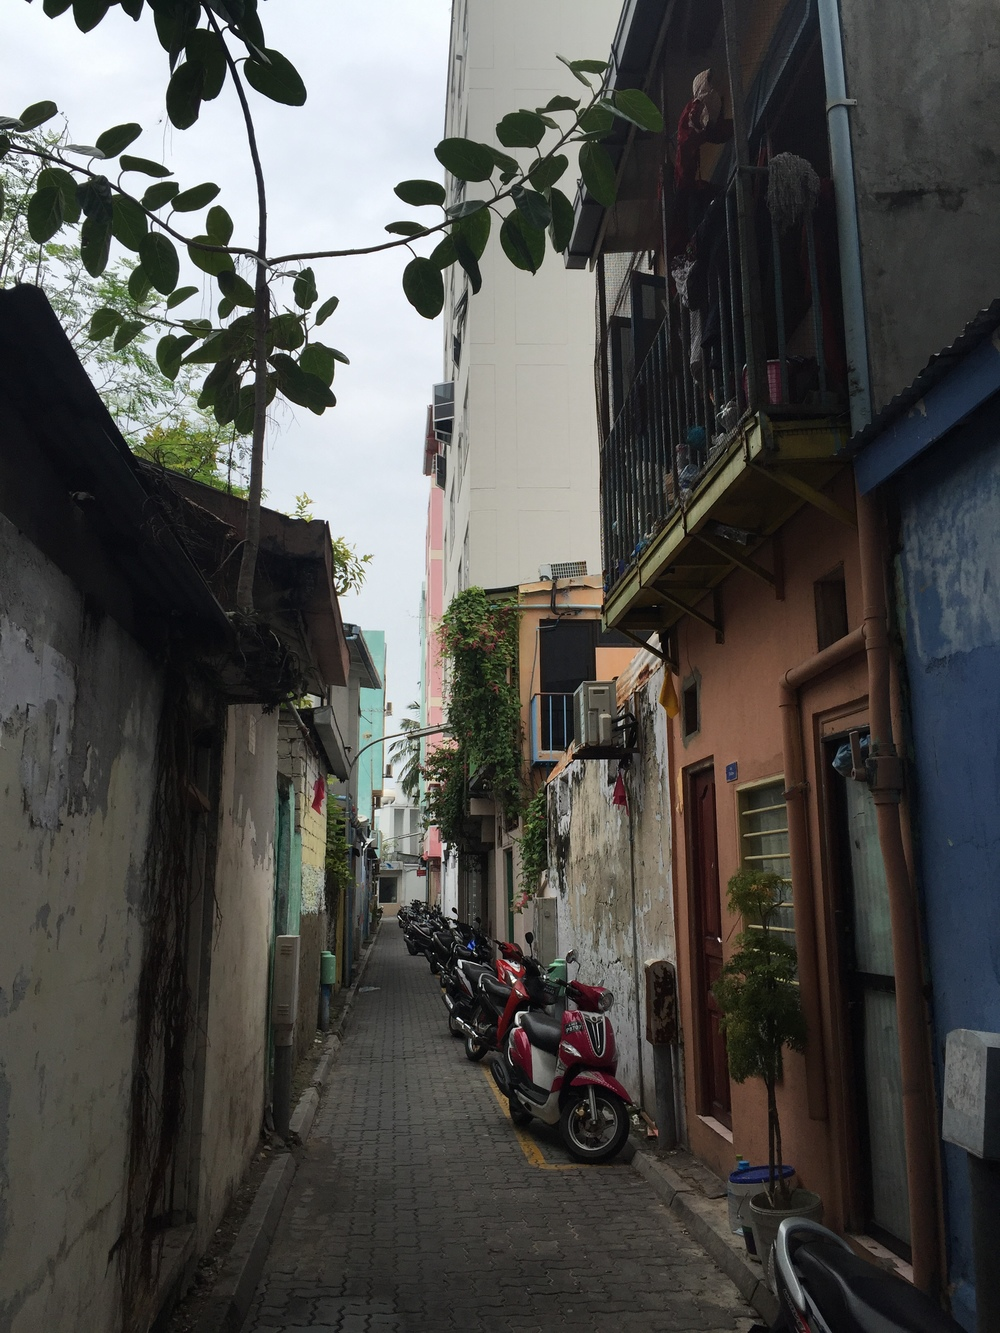 A typical street in the capital of Maldives, Male'